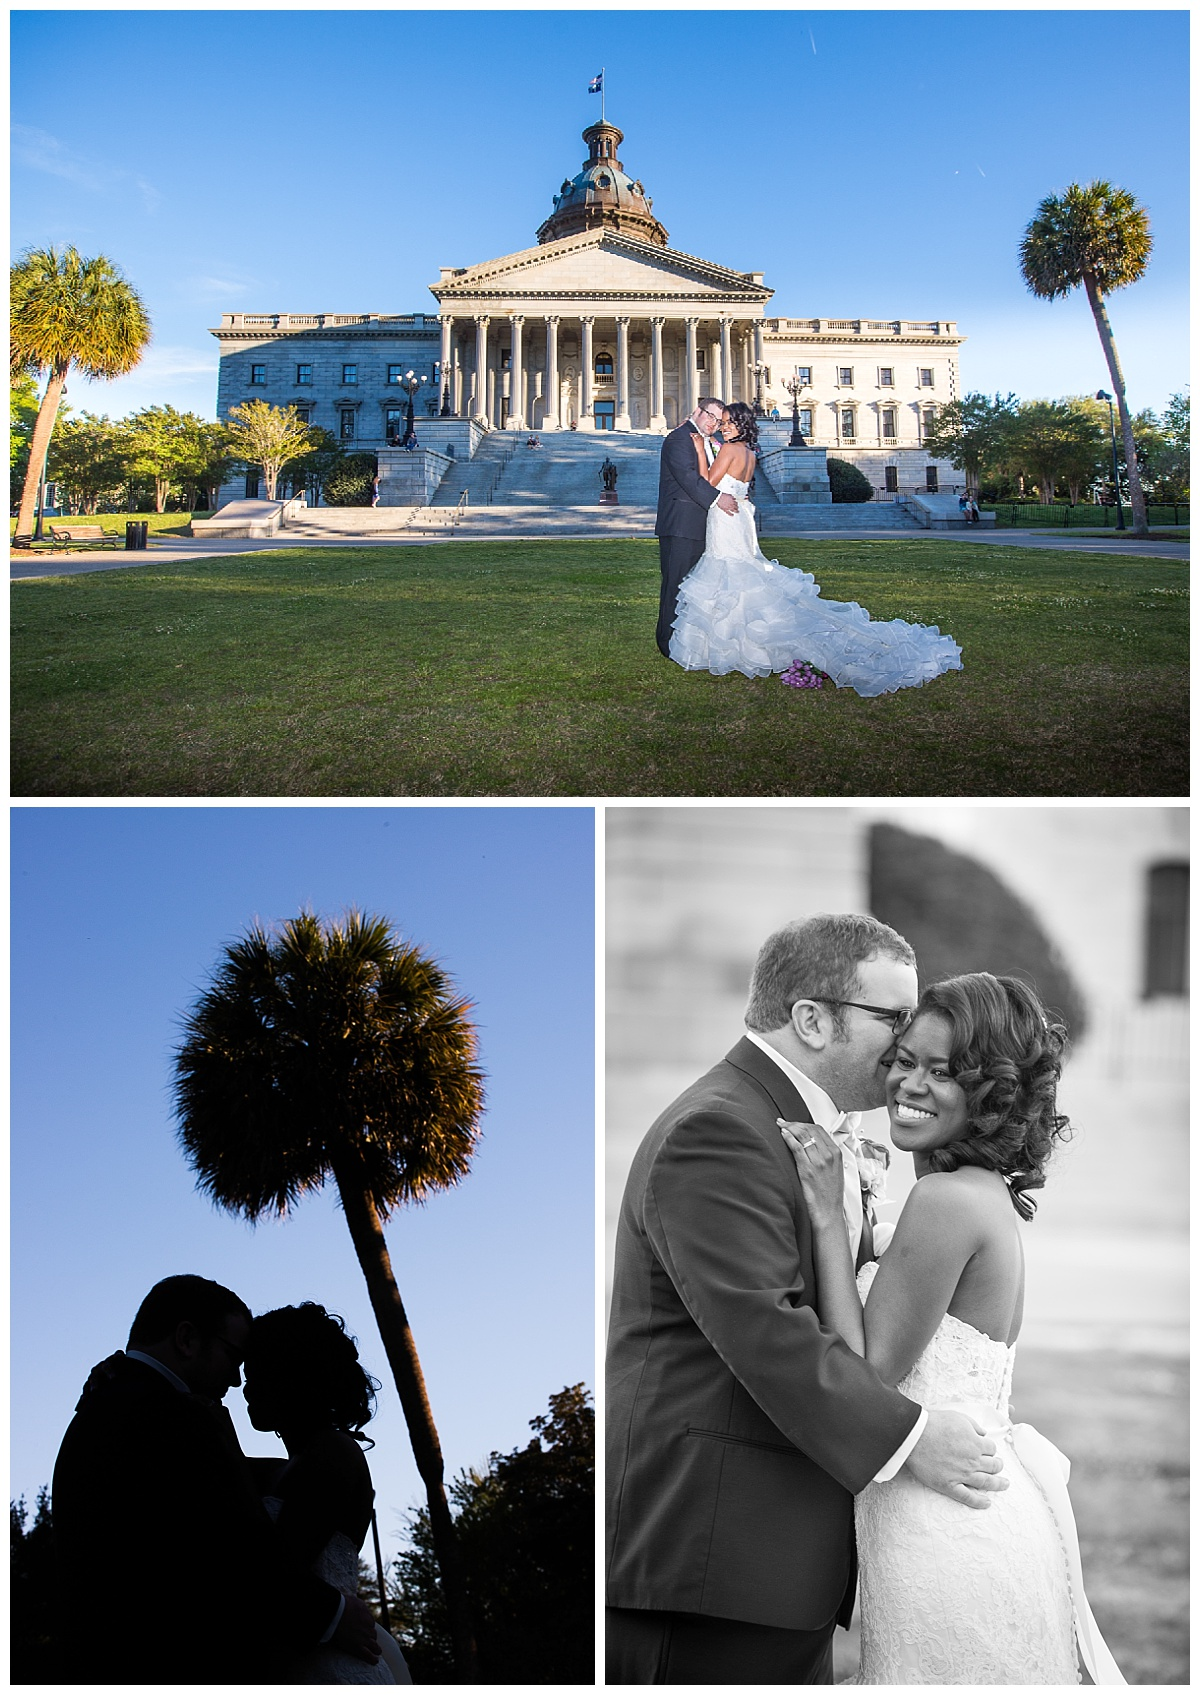 State House bride and groom wedding with palmetto tree